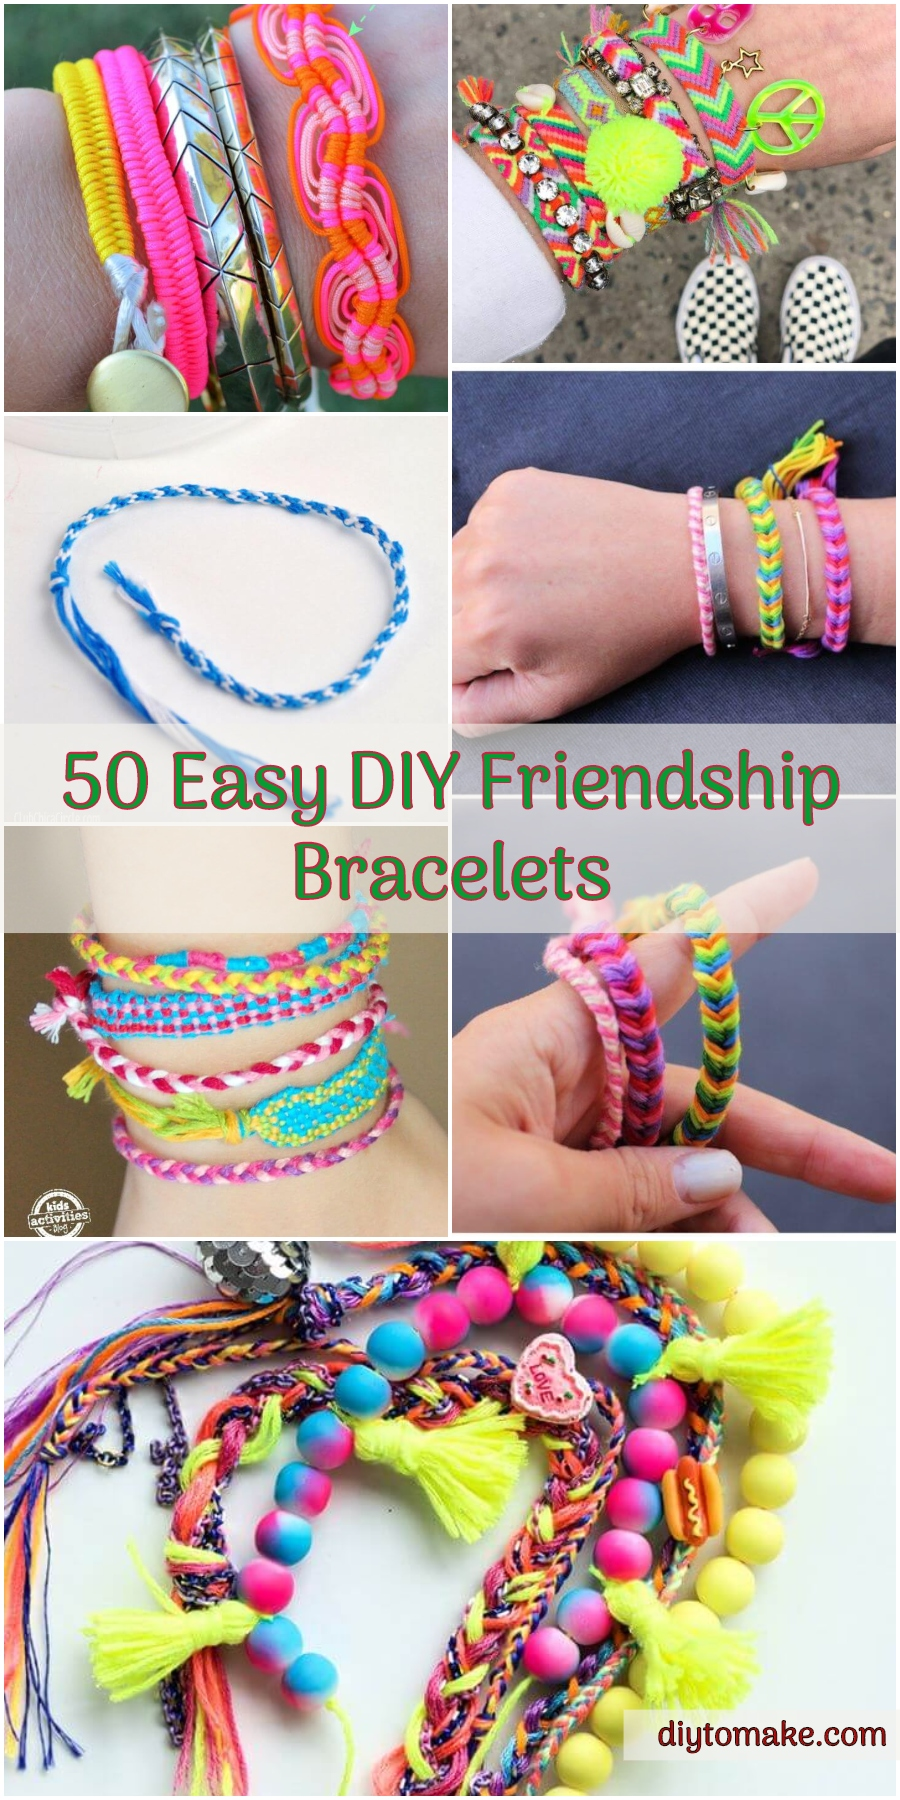 50 Easy DIY Friendship Bracelets How to Make Step by Step